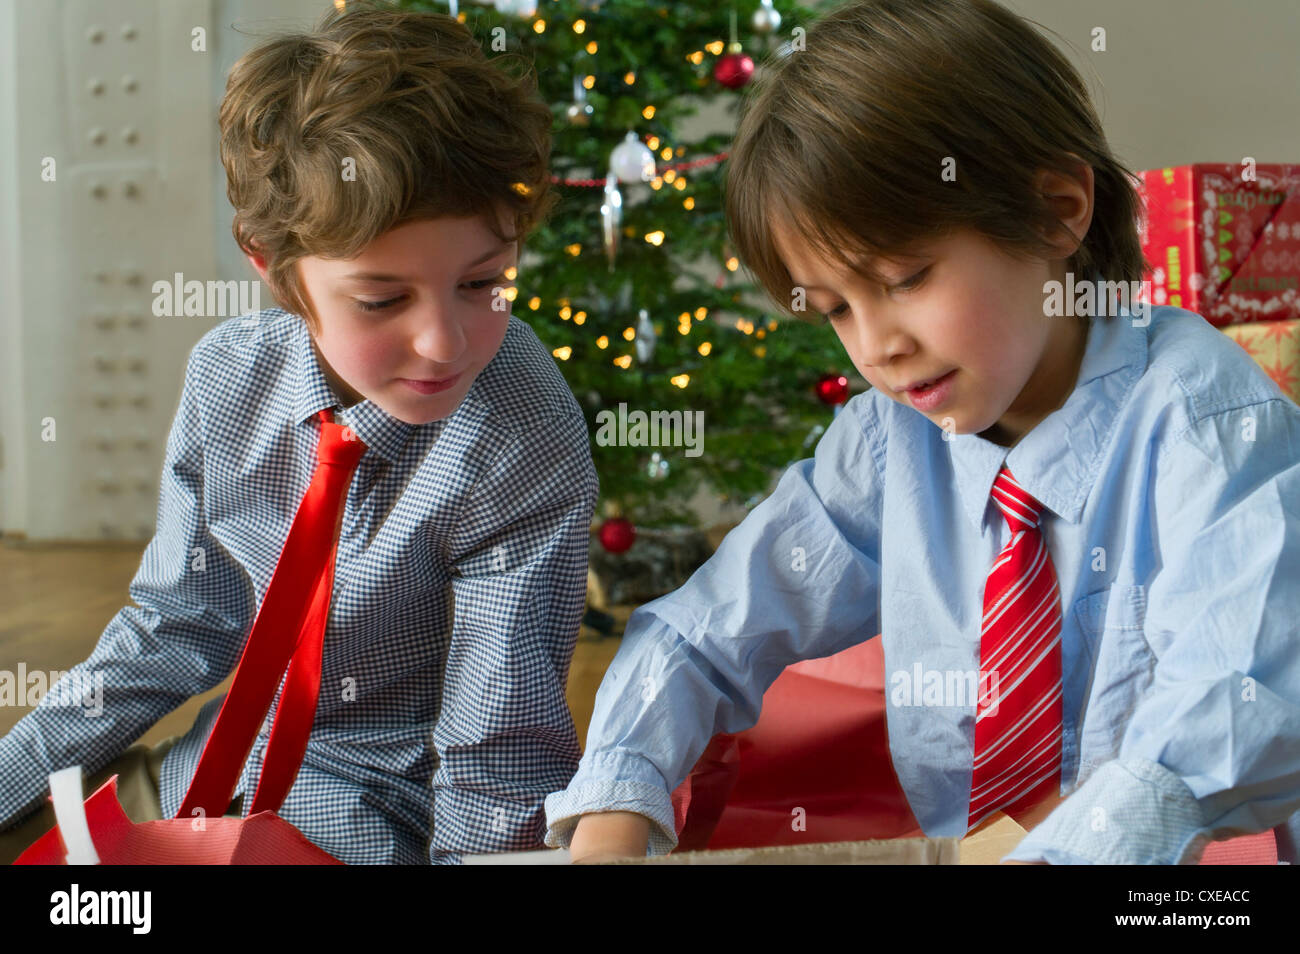 Boys opening Christmas presents - Stock Image